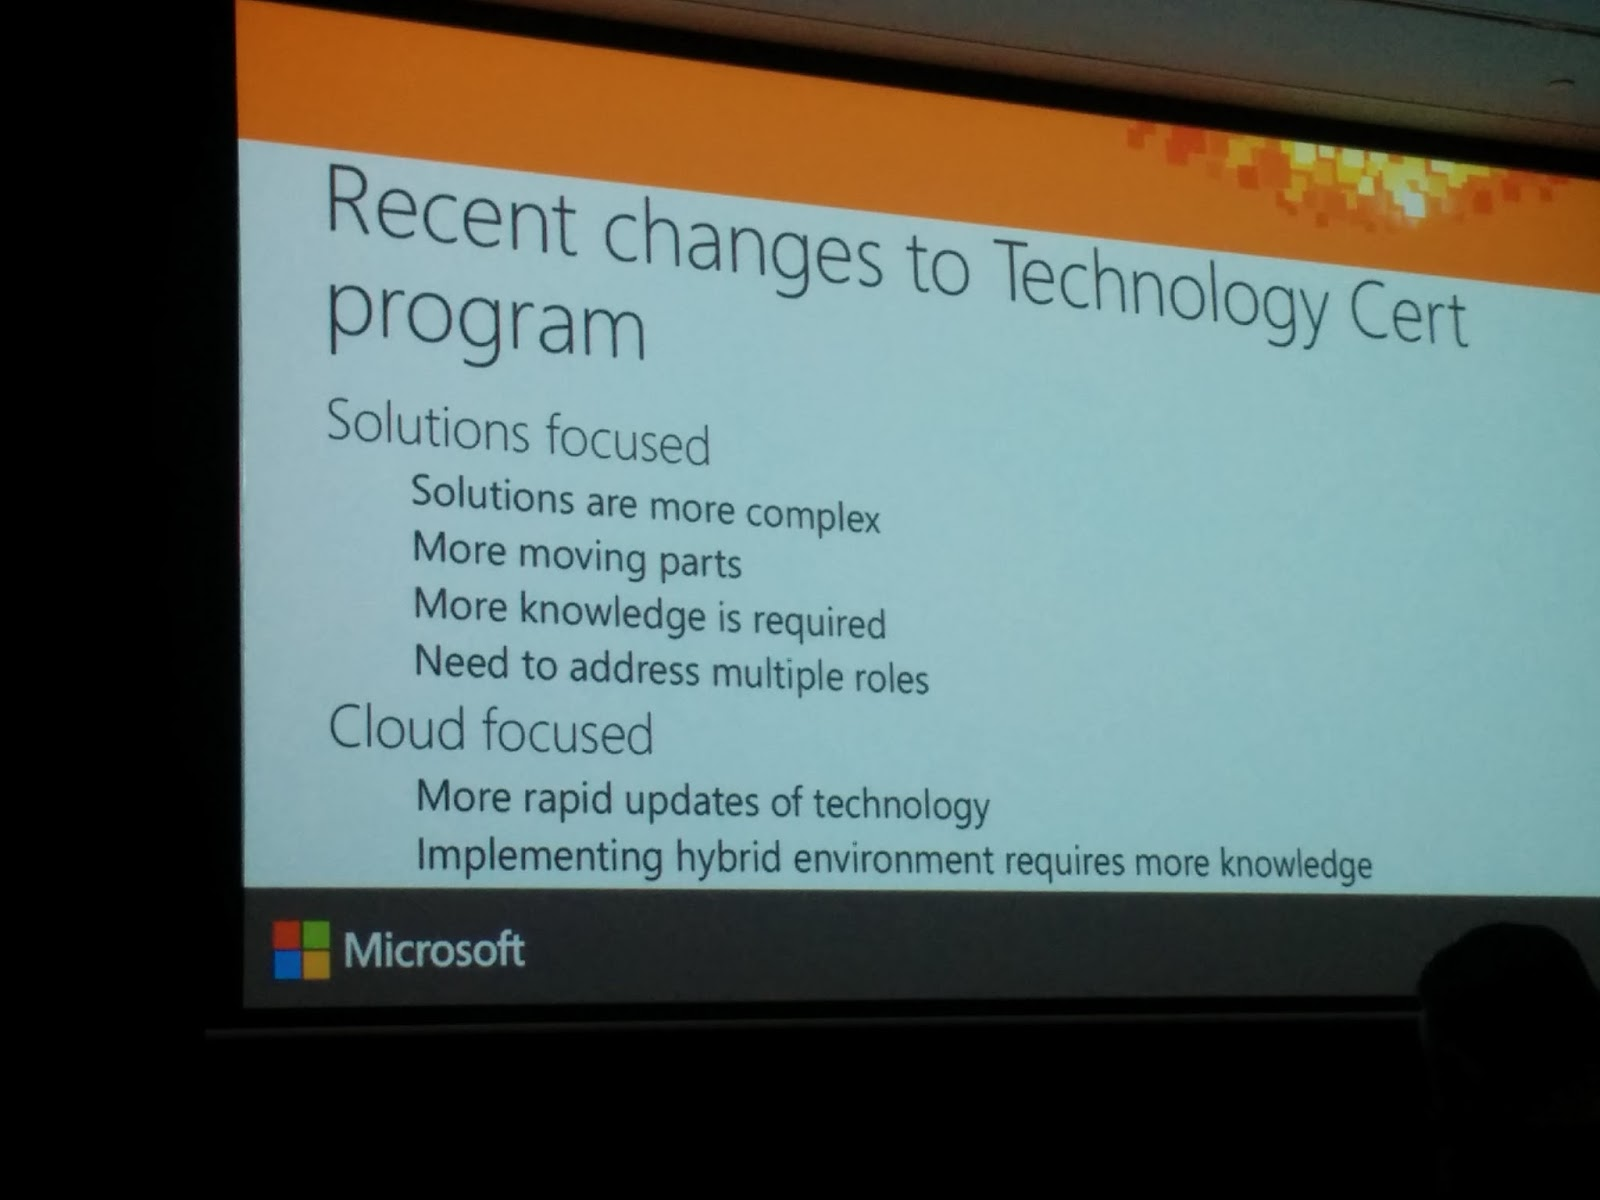 The baretta ms ignite certification 101 find the path exam111 my musings the best thing about this session was seeing the official microsoft certification roadmap provided below 1betcityfo Image collections